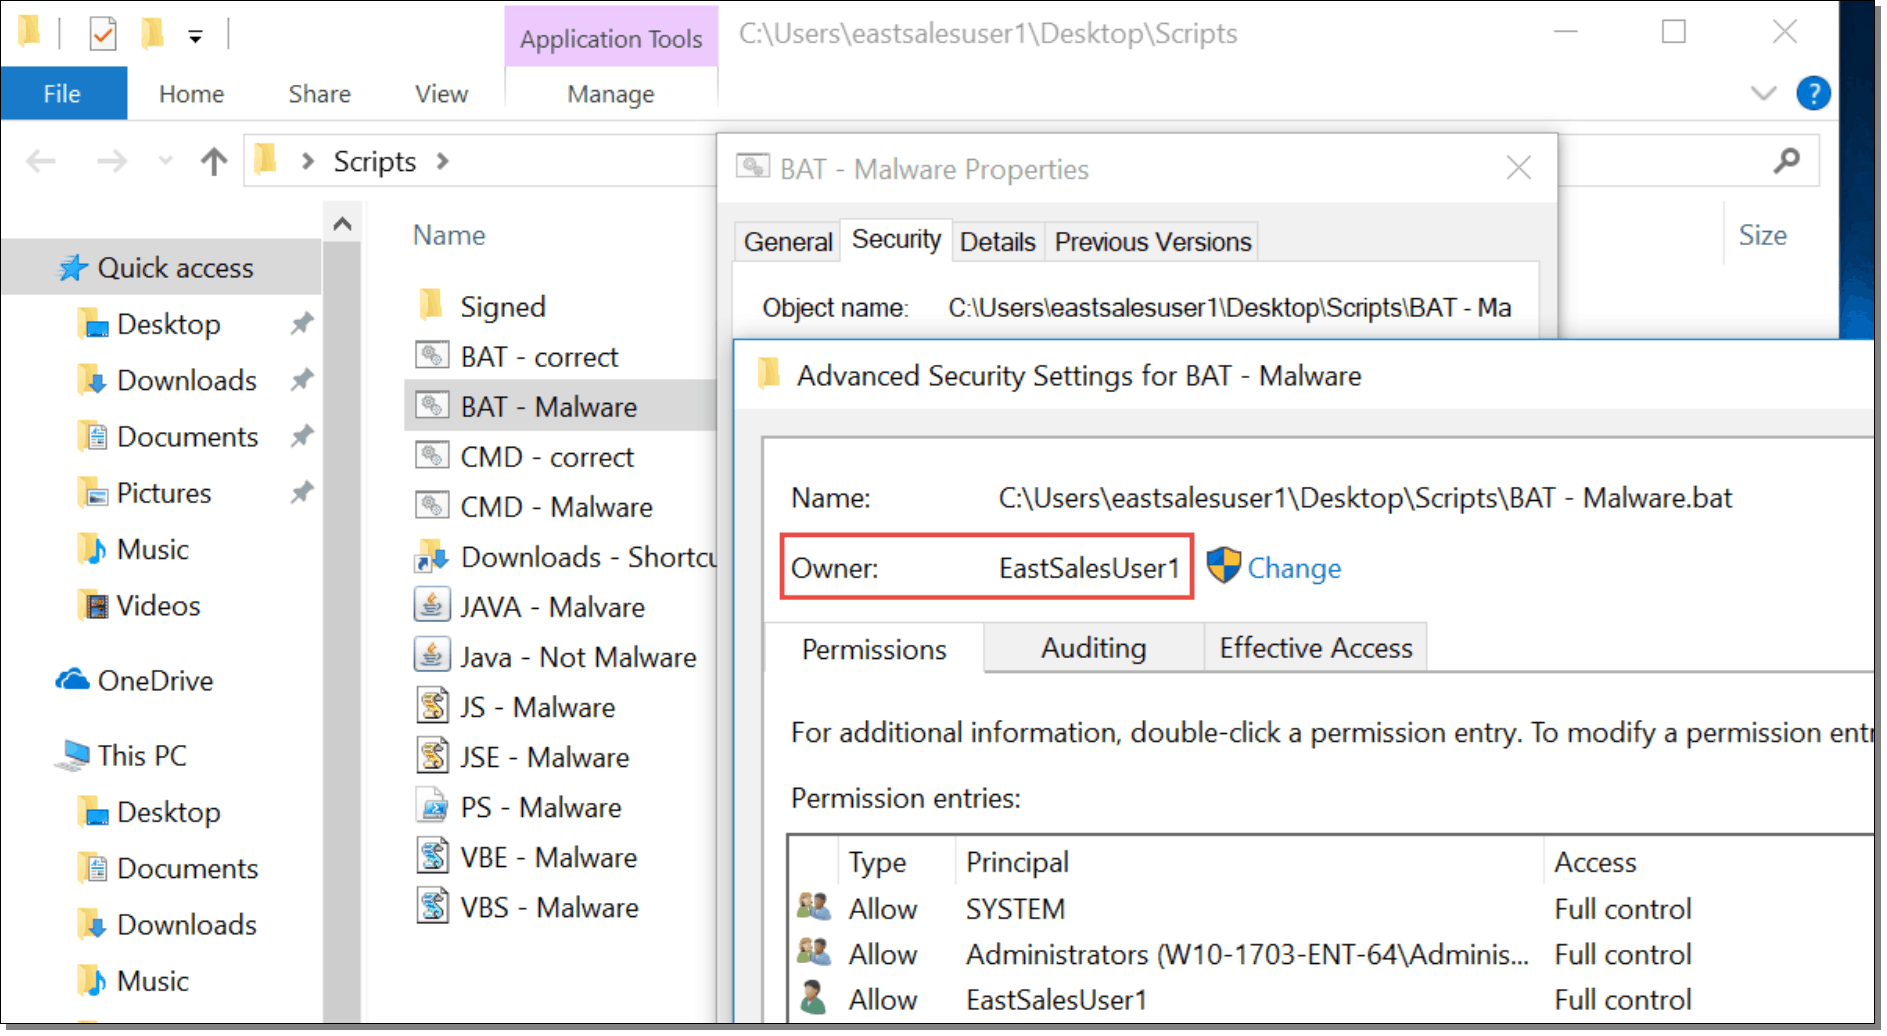 Advanced Security Settings for BAT